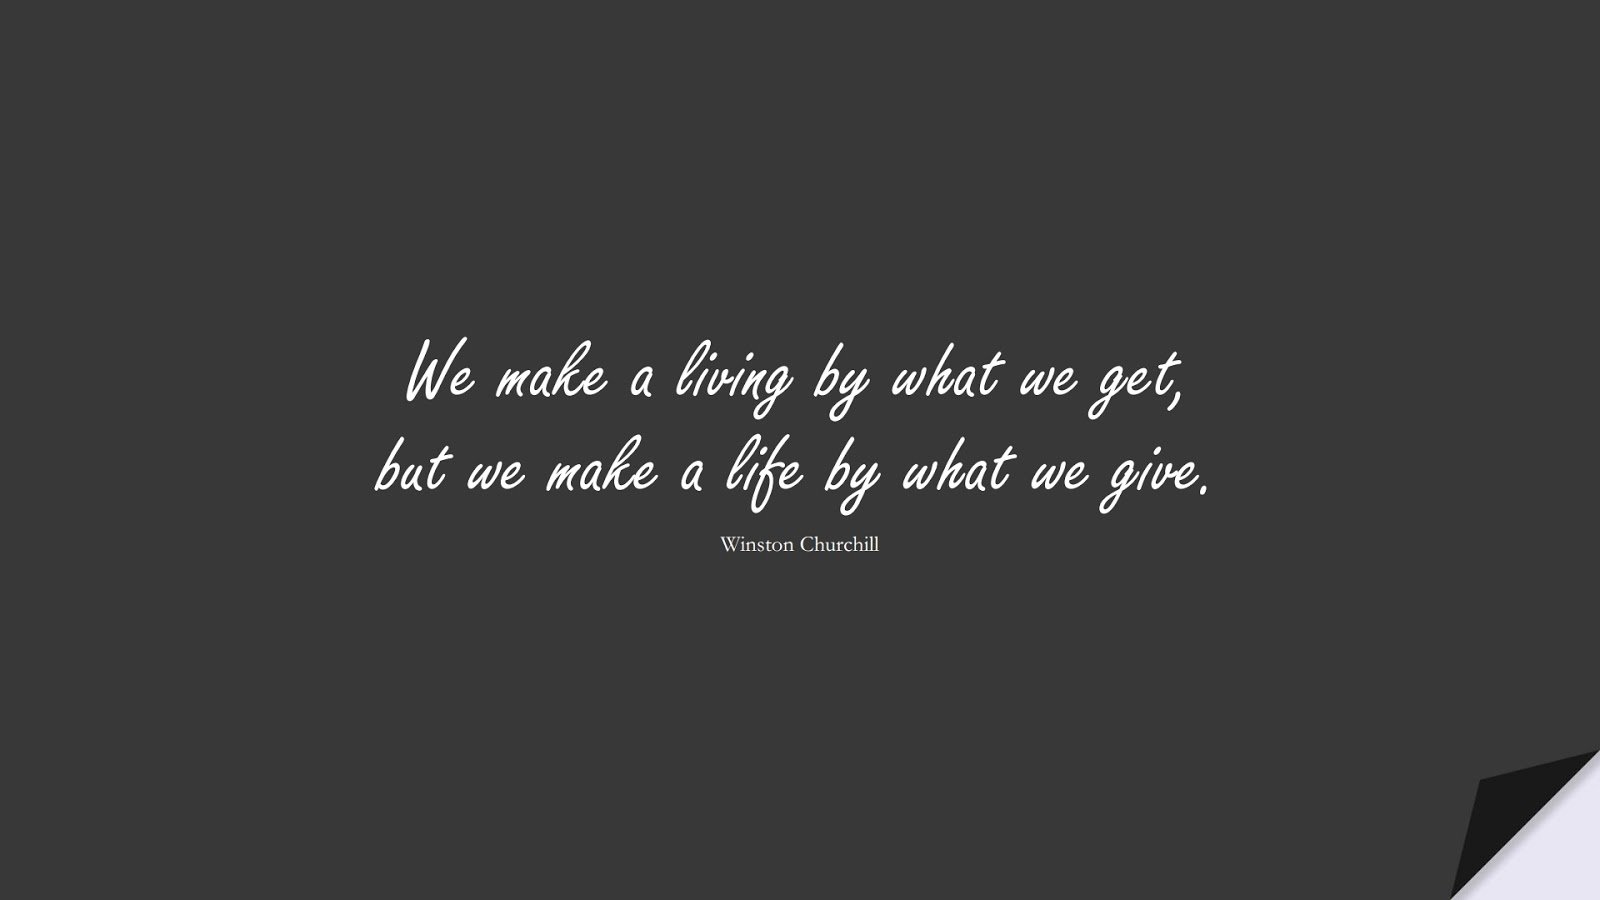 We make a living by what we get, but we make a life by what we give. (Winston Churchill);  #ShortQuotes